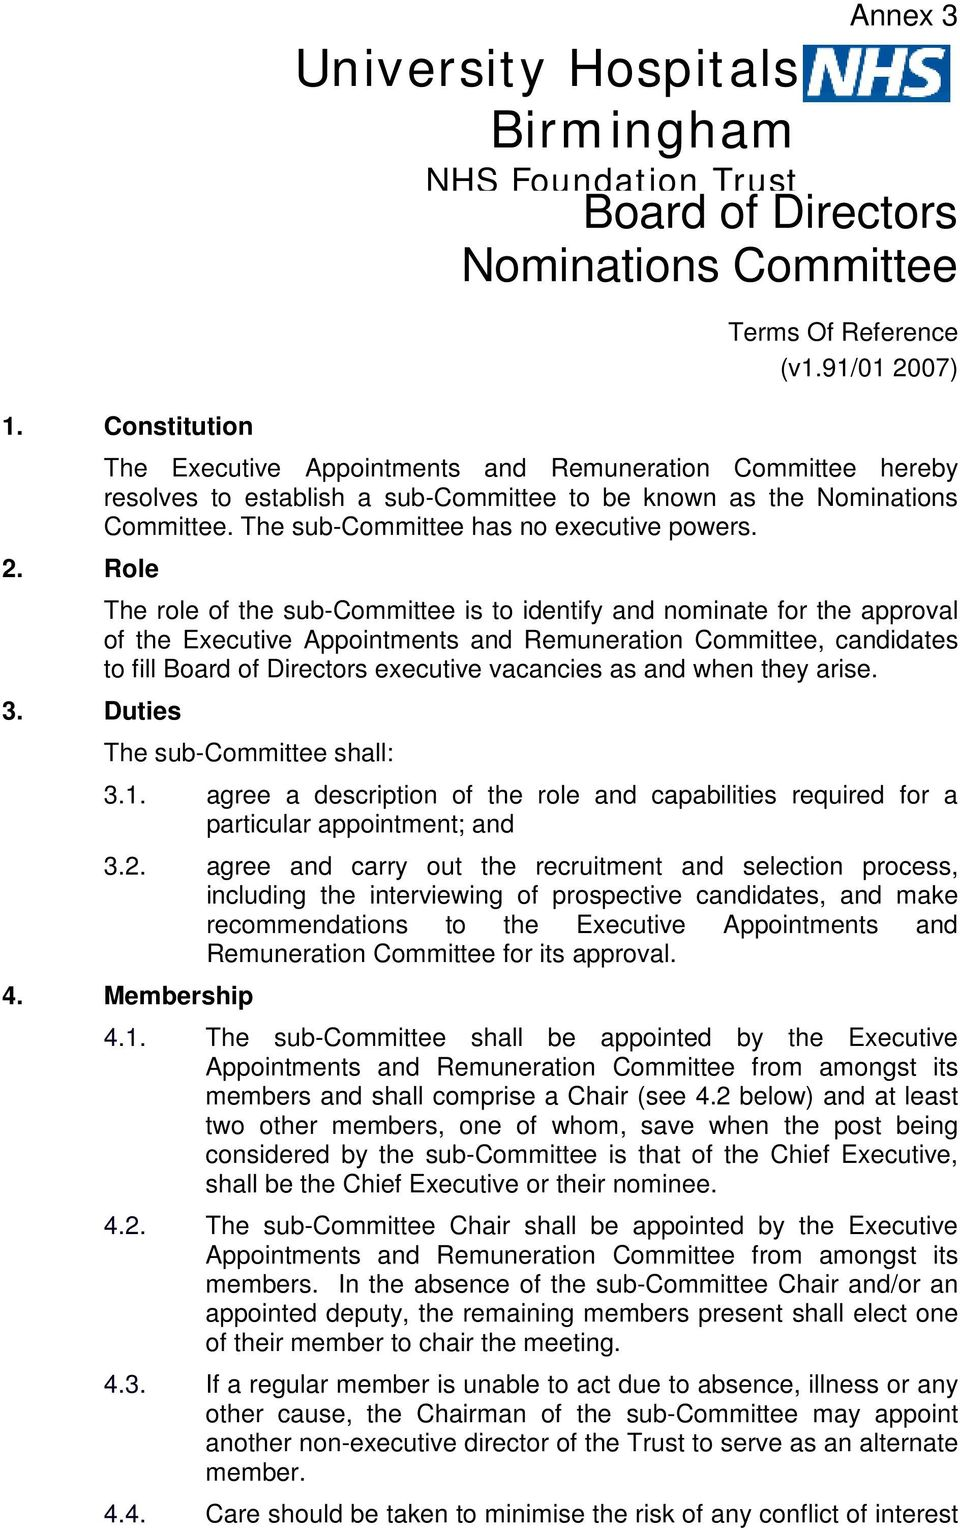 The role of the sub-committee is to identify and nominate for the approval of the Executive Appointments and Remuneration Committee, candidates to fill Board of Directors executive vacancies as and